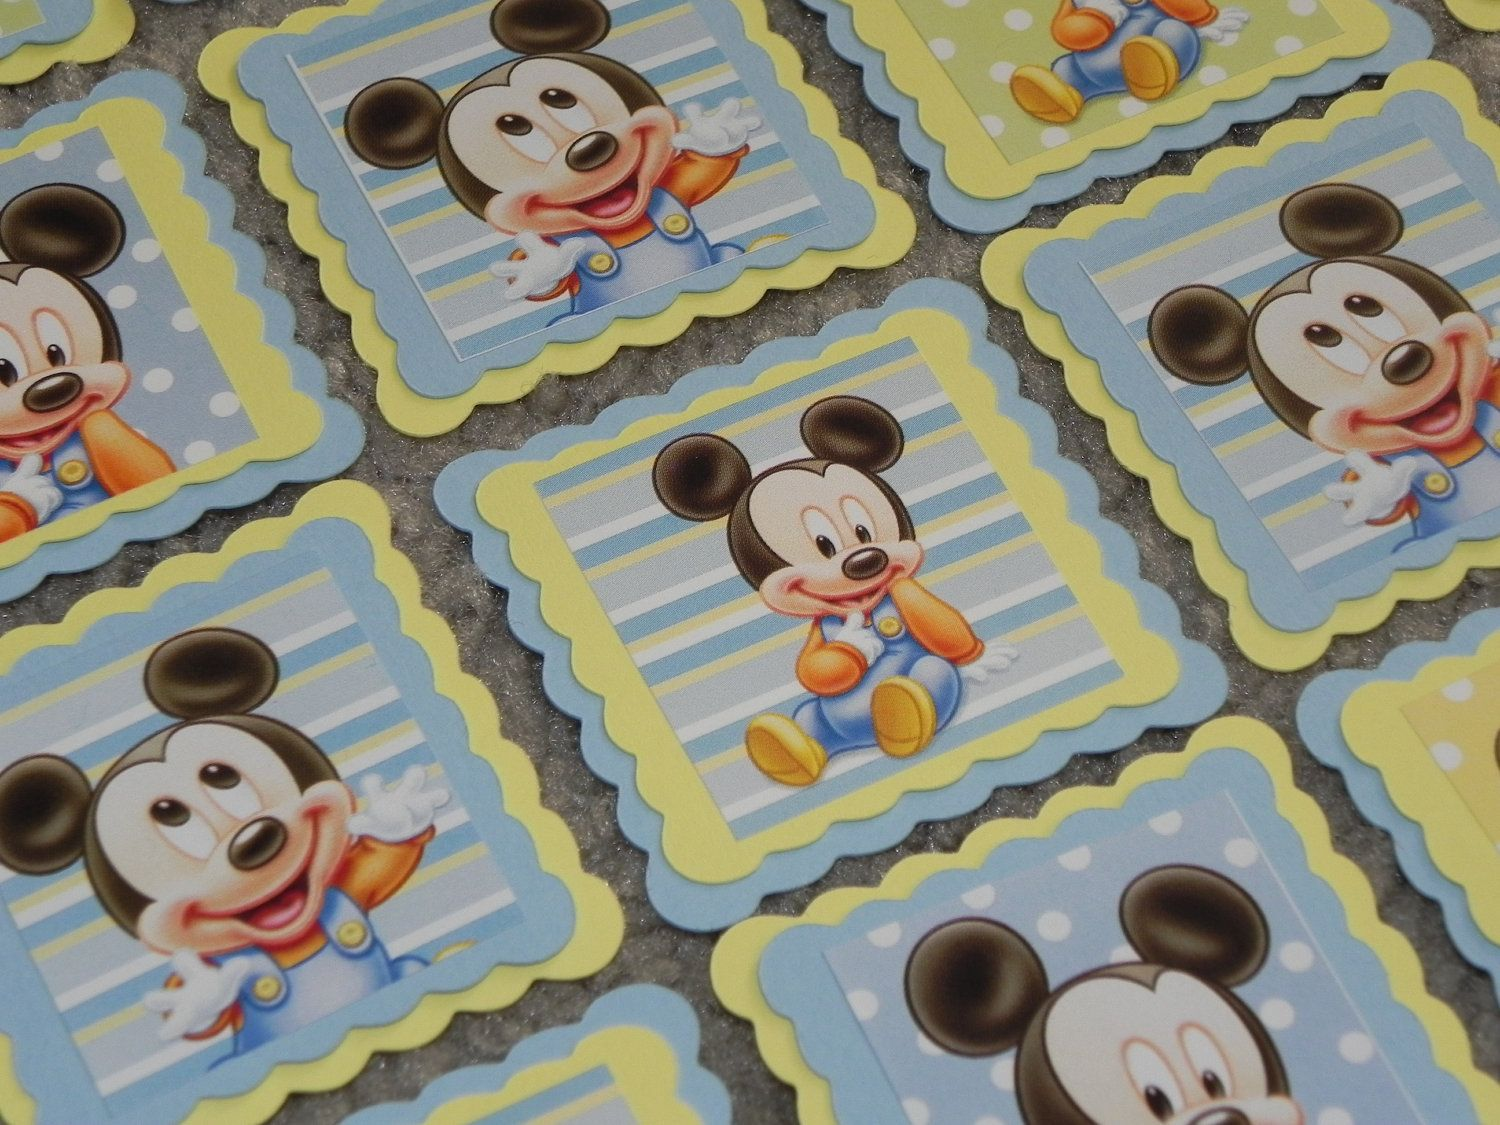 61 best ideas for ali's 1st bday party! - baby mickey images on